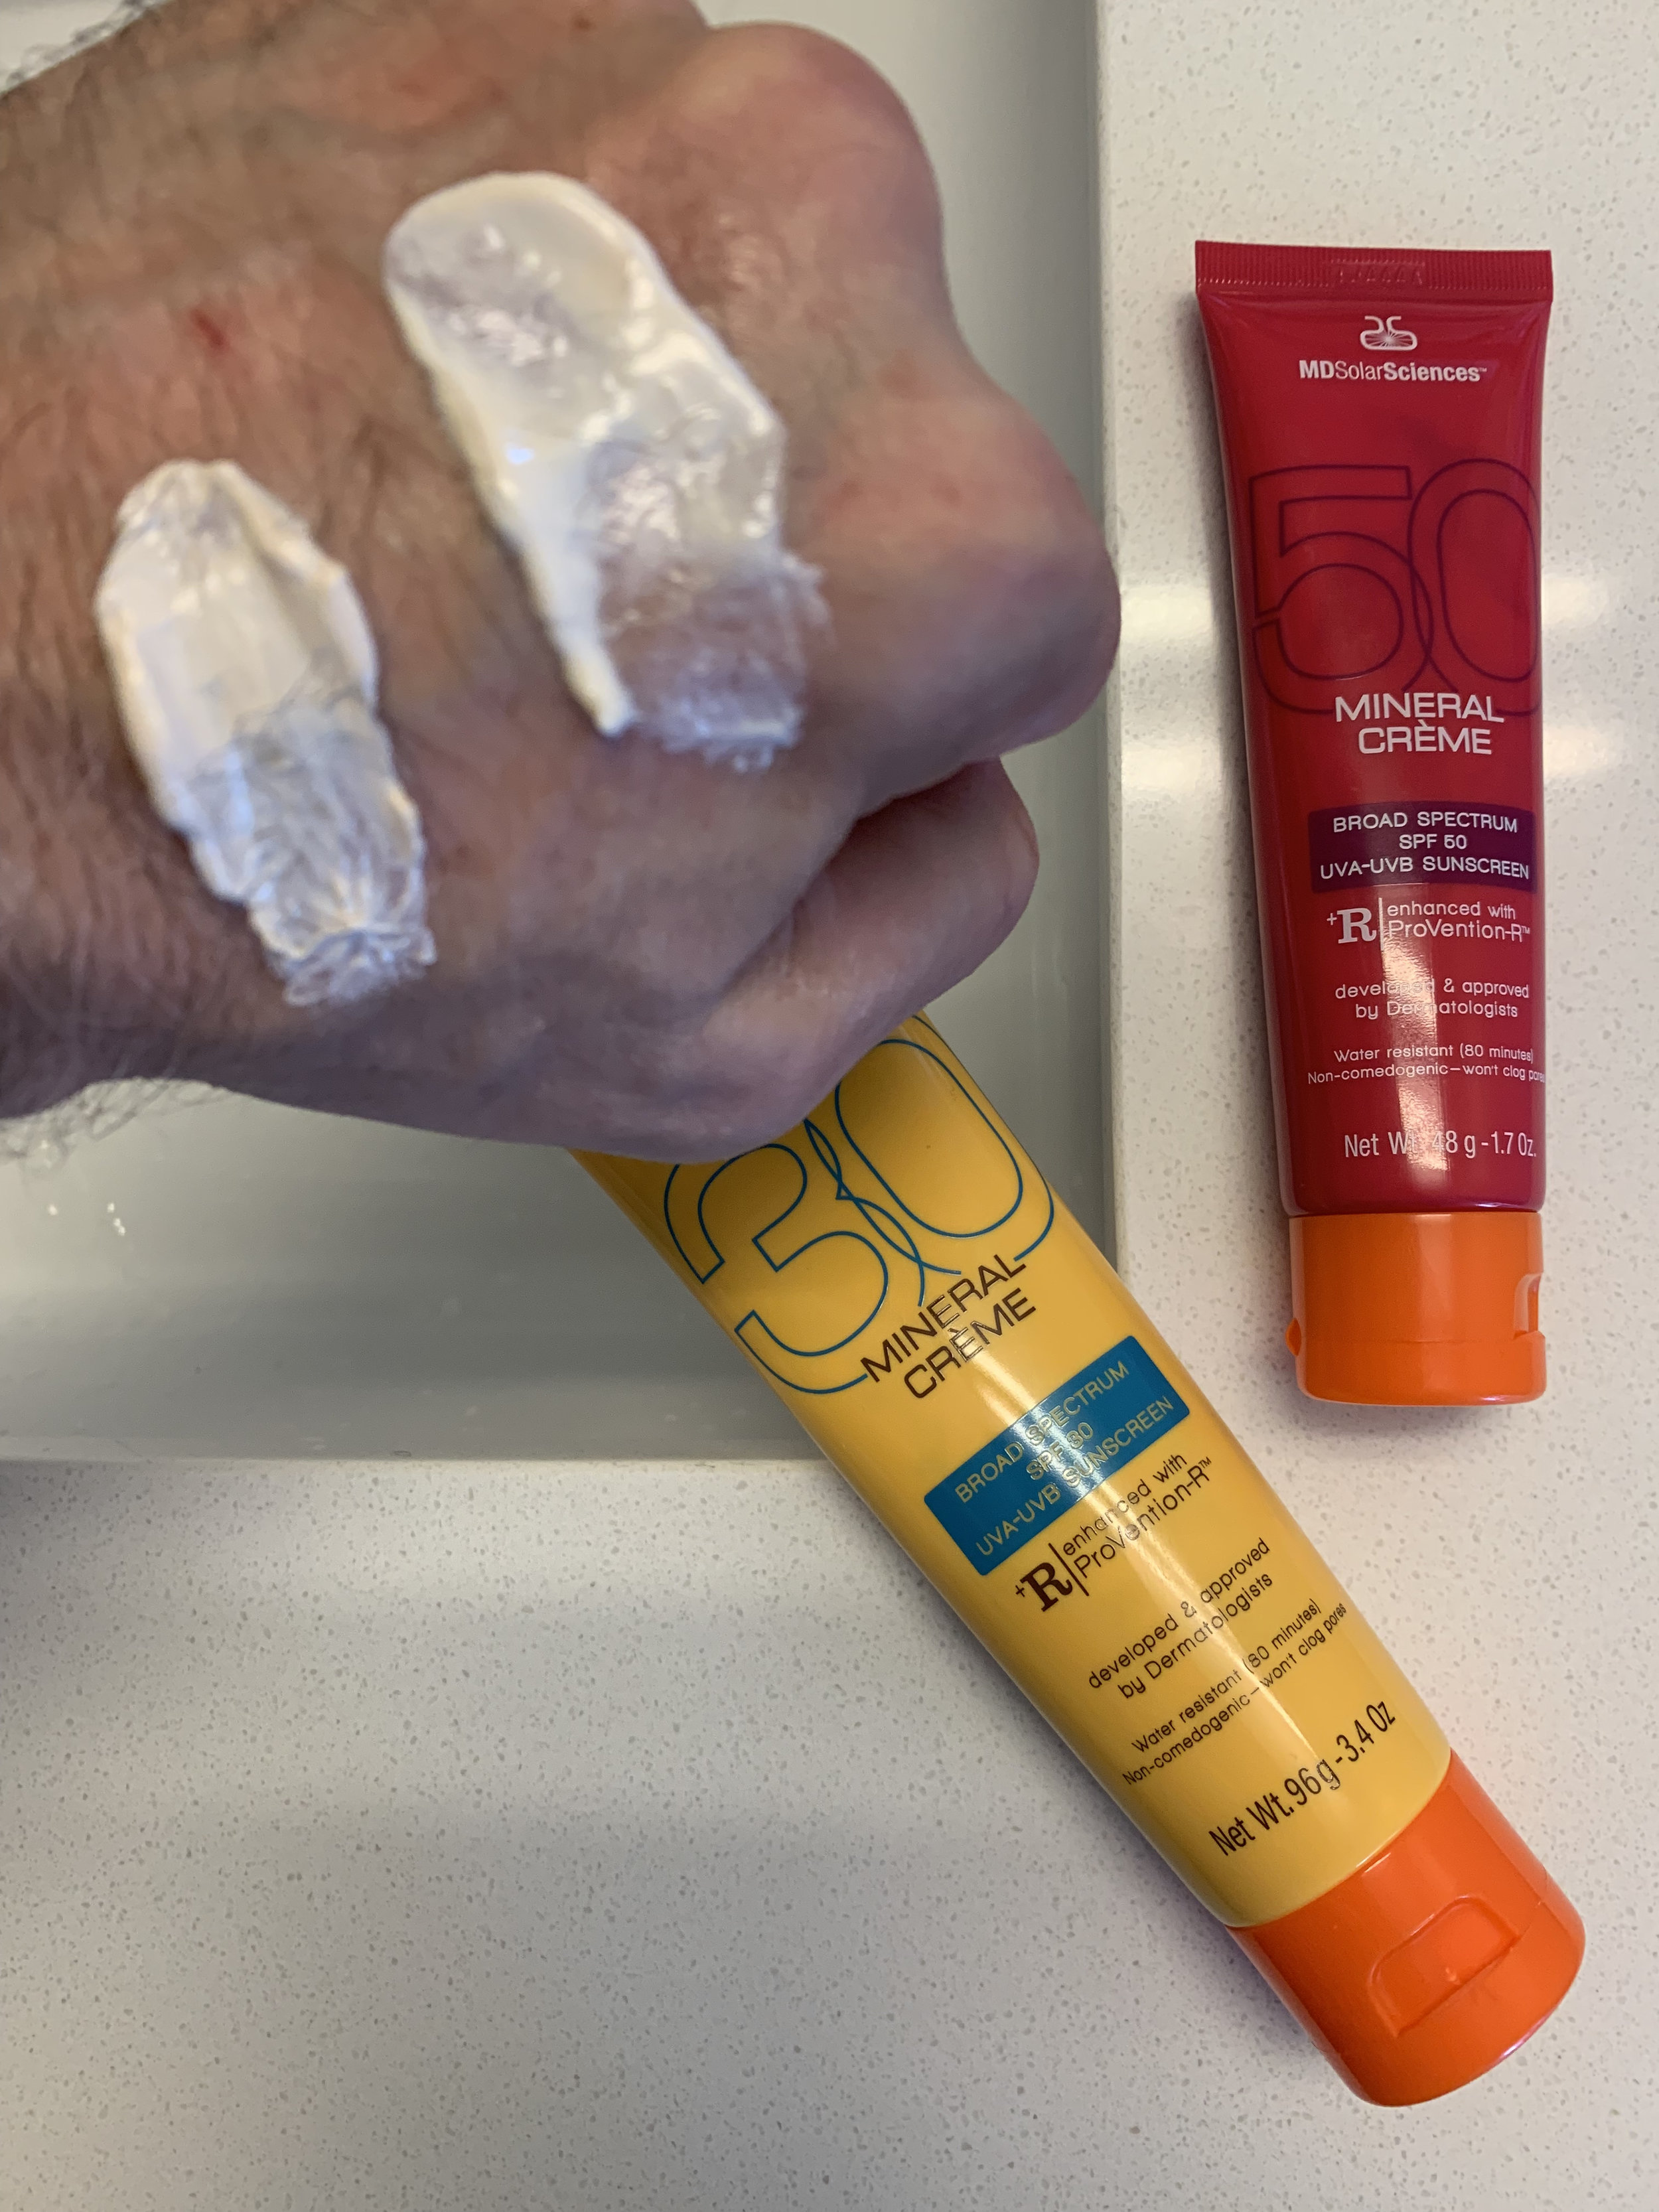 Comparing the textures of Mineral Crème 30 and Mineral Crème 30.